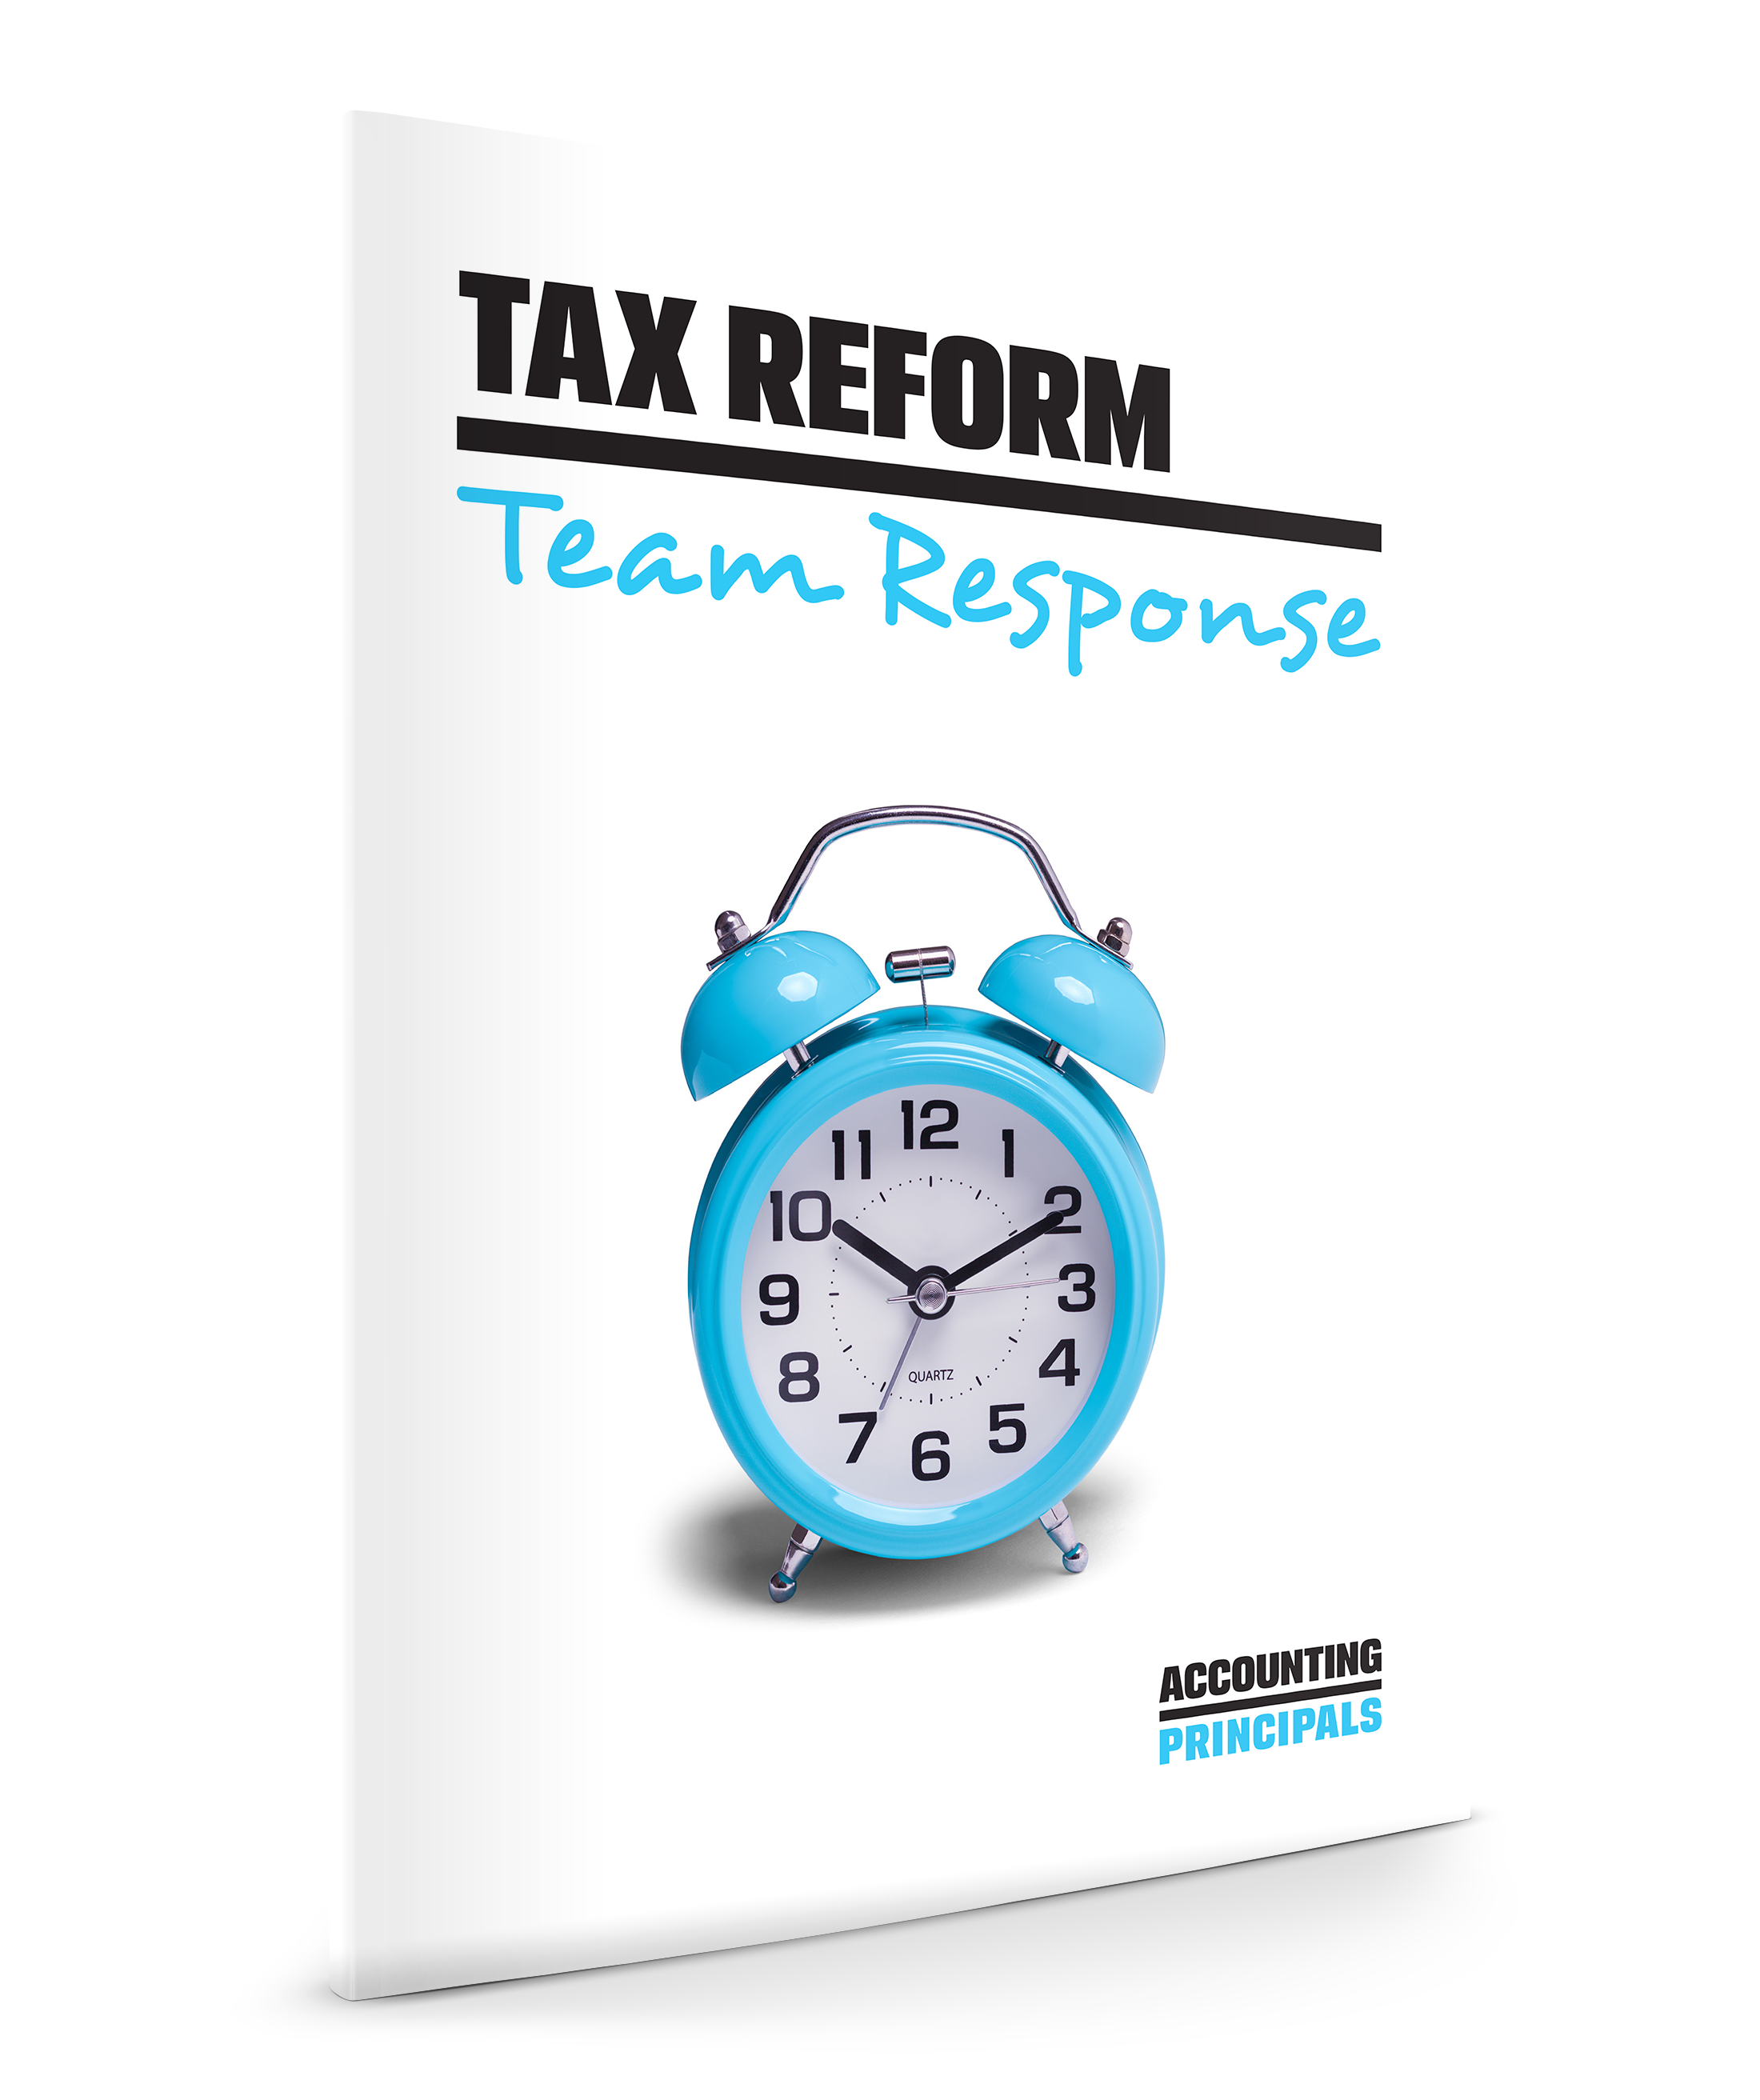 Cover of Tax Reform whitepaper